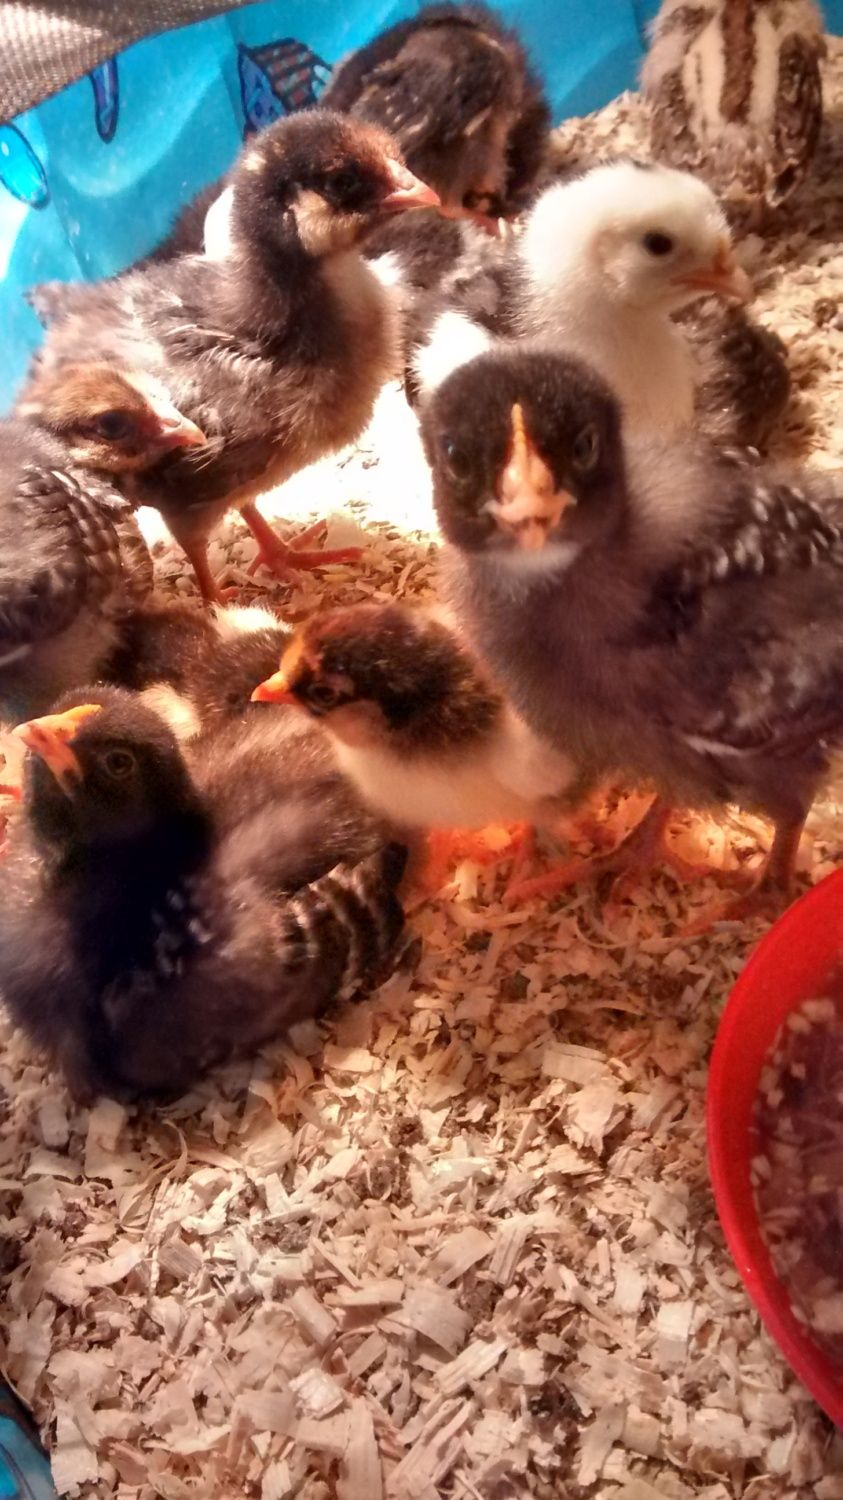 shortgrass's photos in Comb sexing chicks